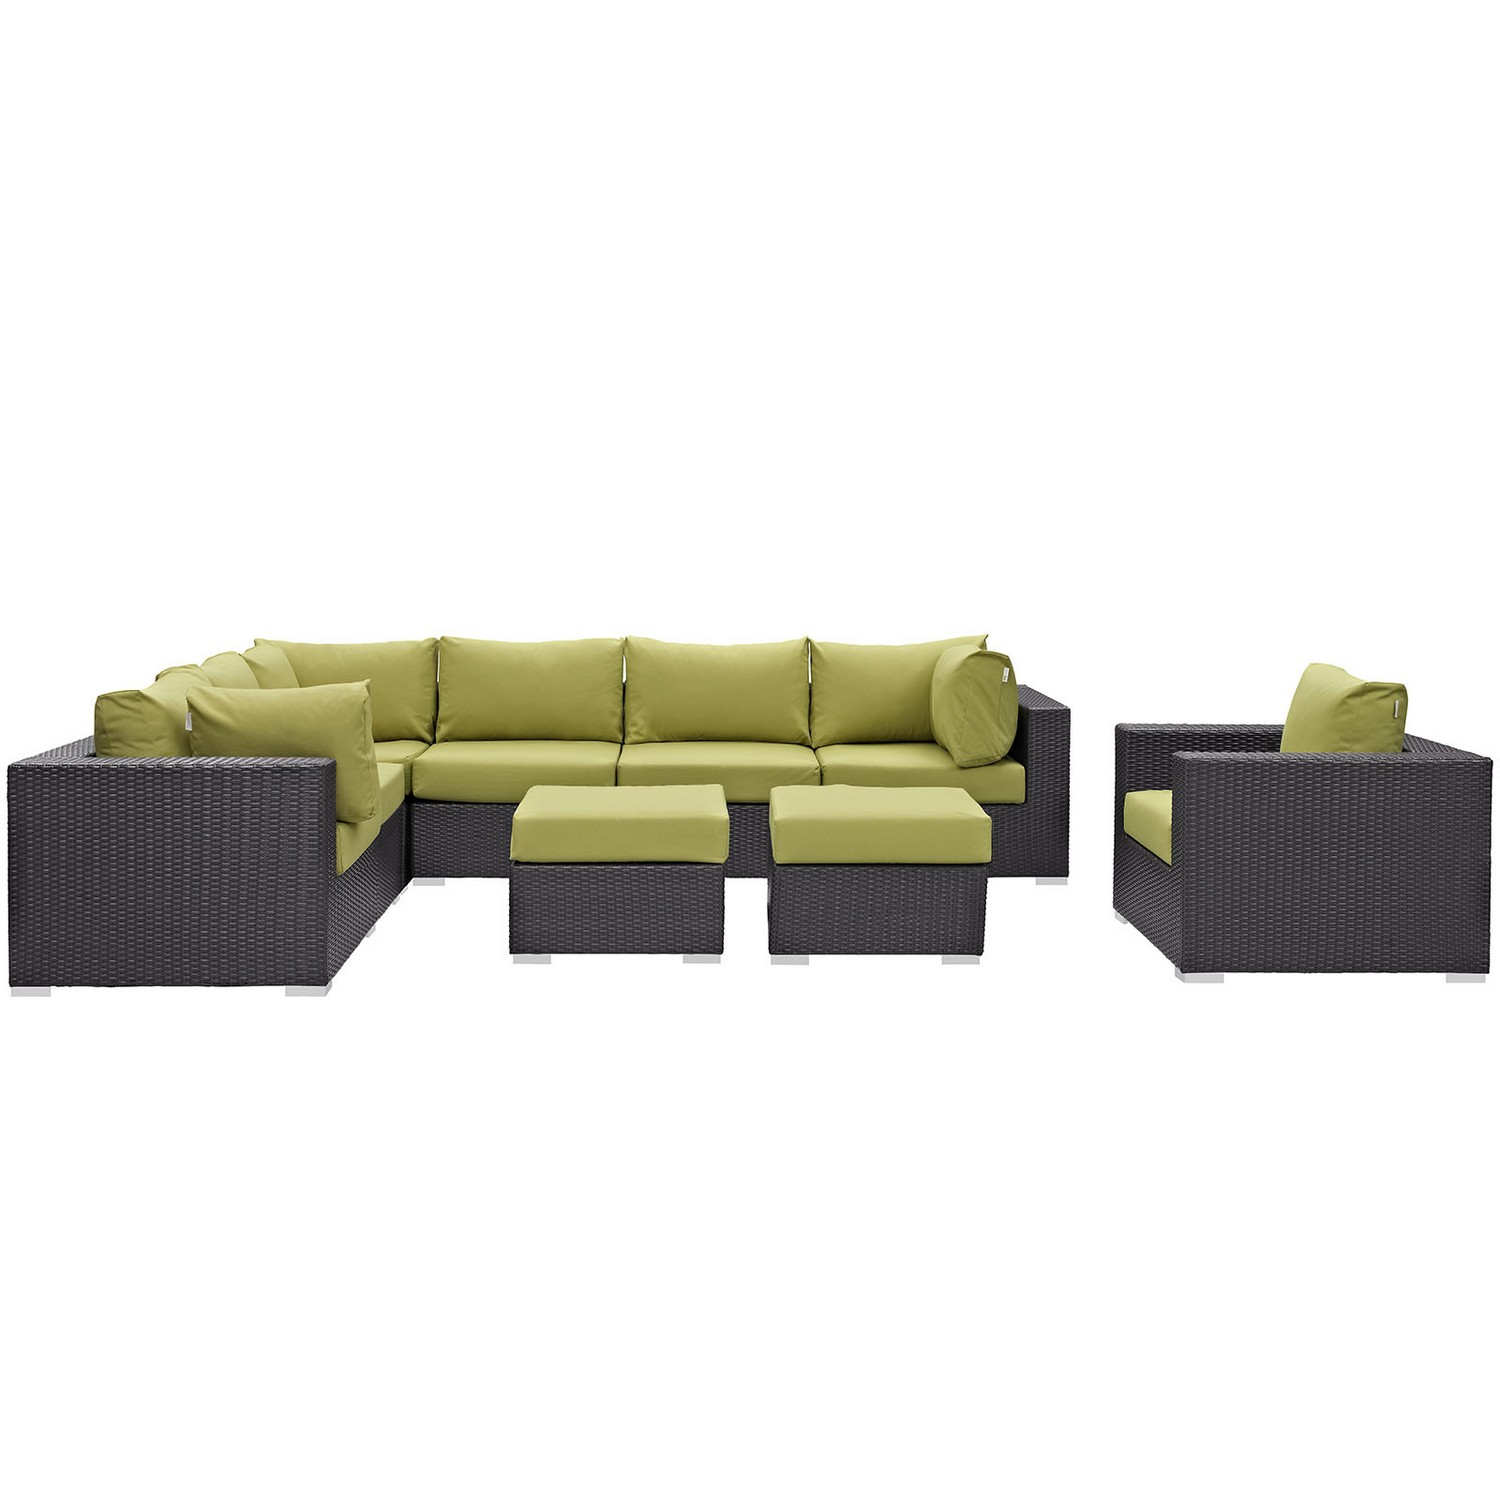 Modway Convene 9 Piece Outdoor Patio Sectional Set - Espresso Peridot